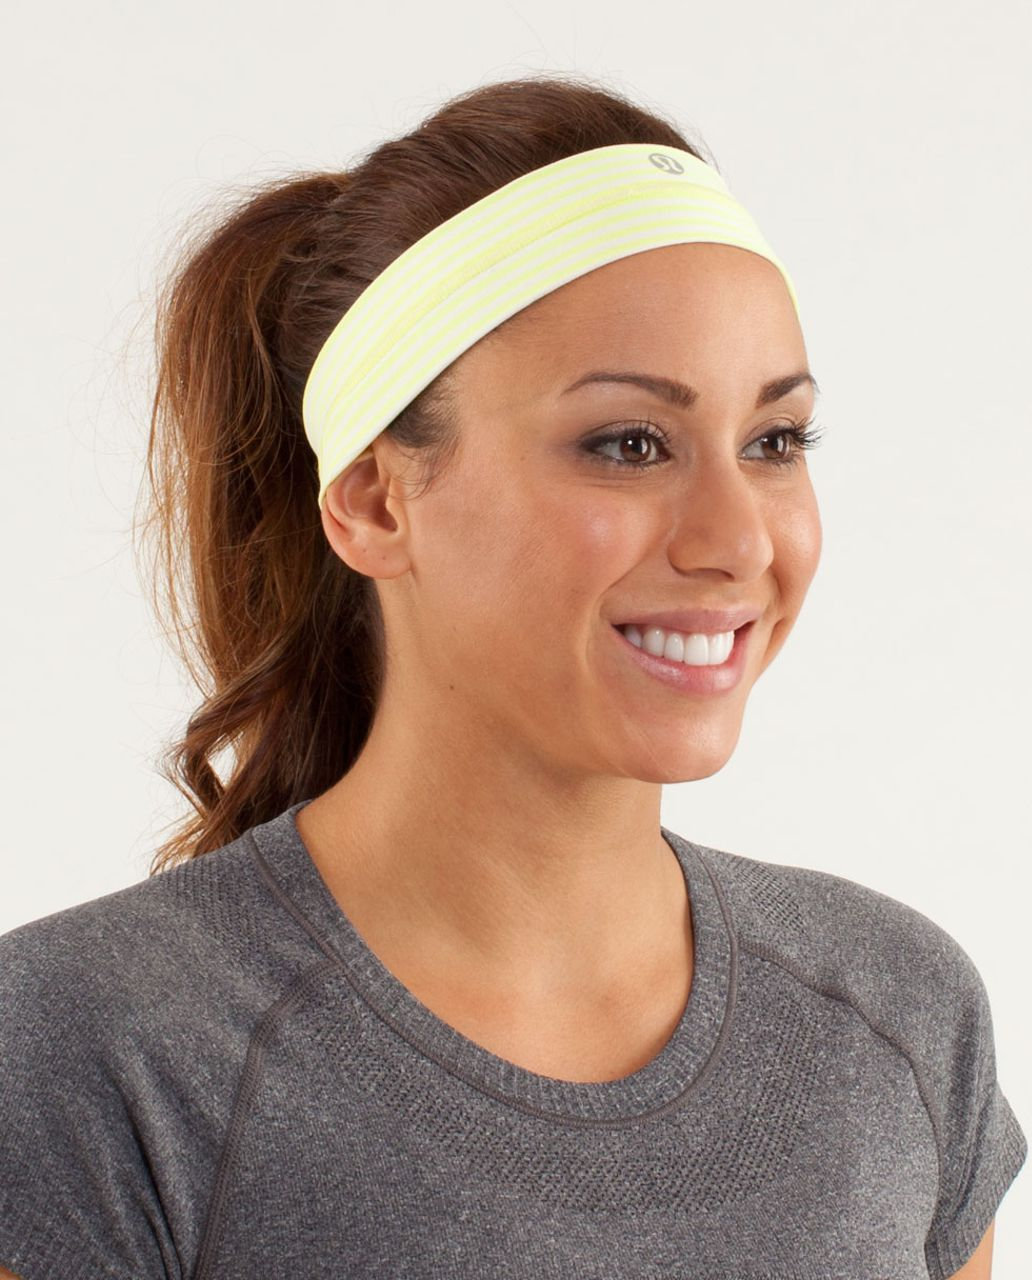 Lululemon Fly Away Tamer Headband - Slope Stripe Polar Cream Clarity Yellow